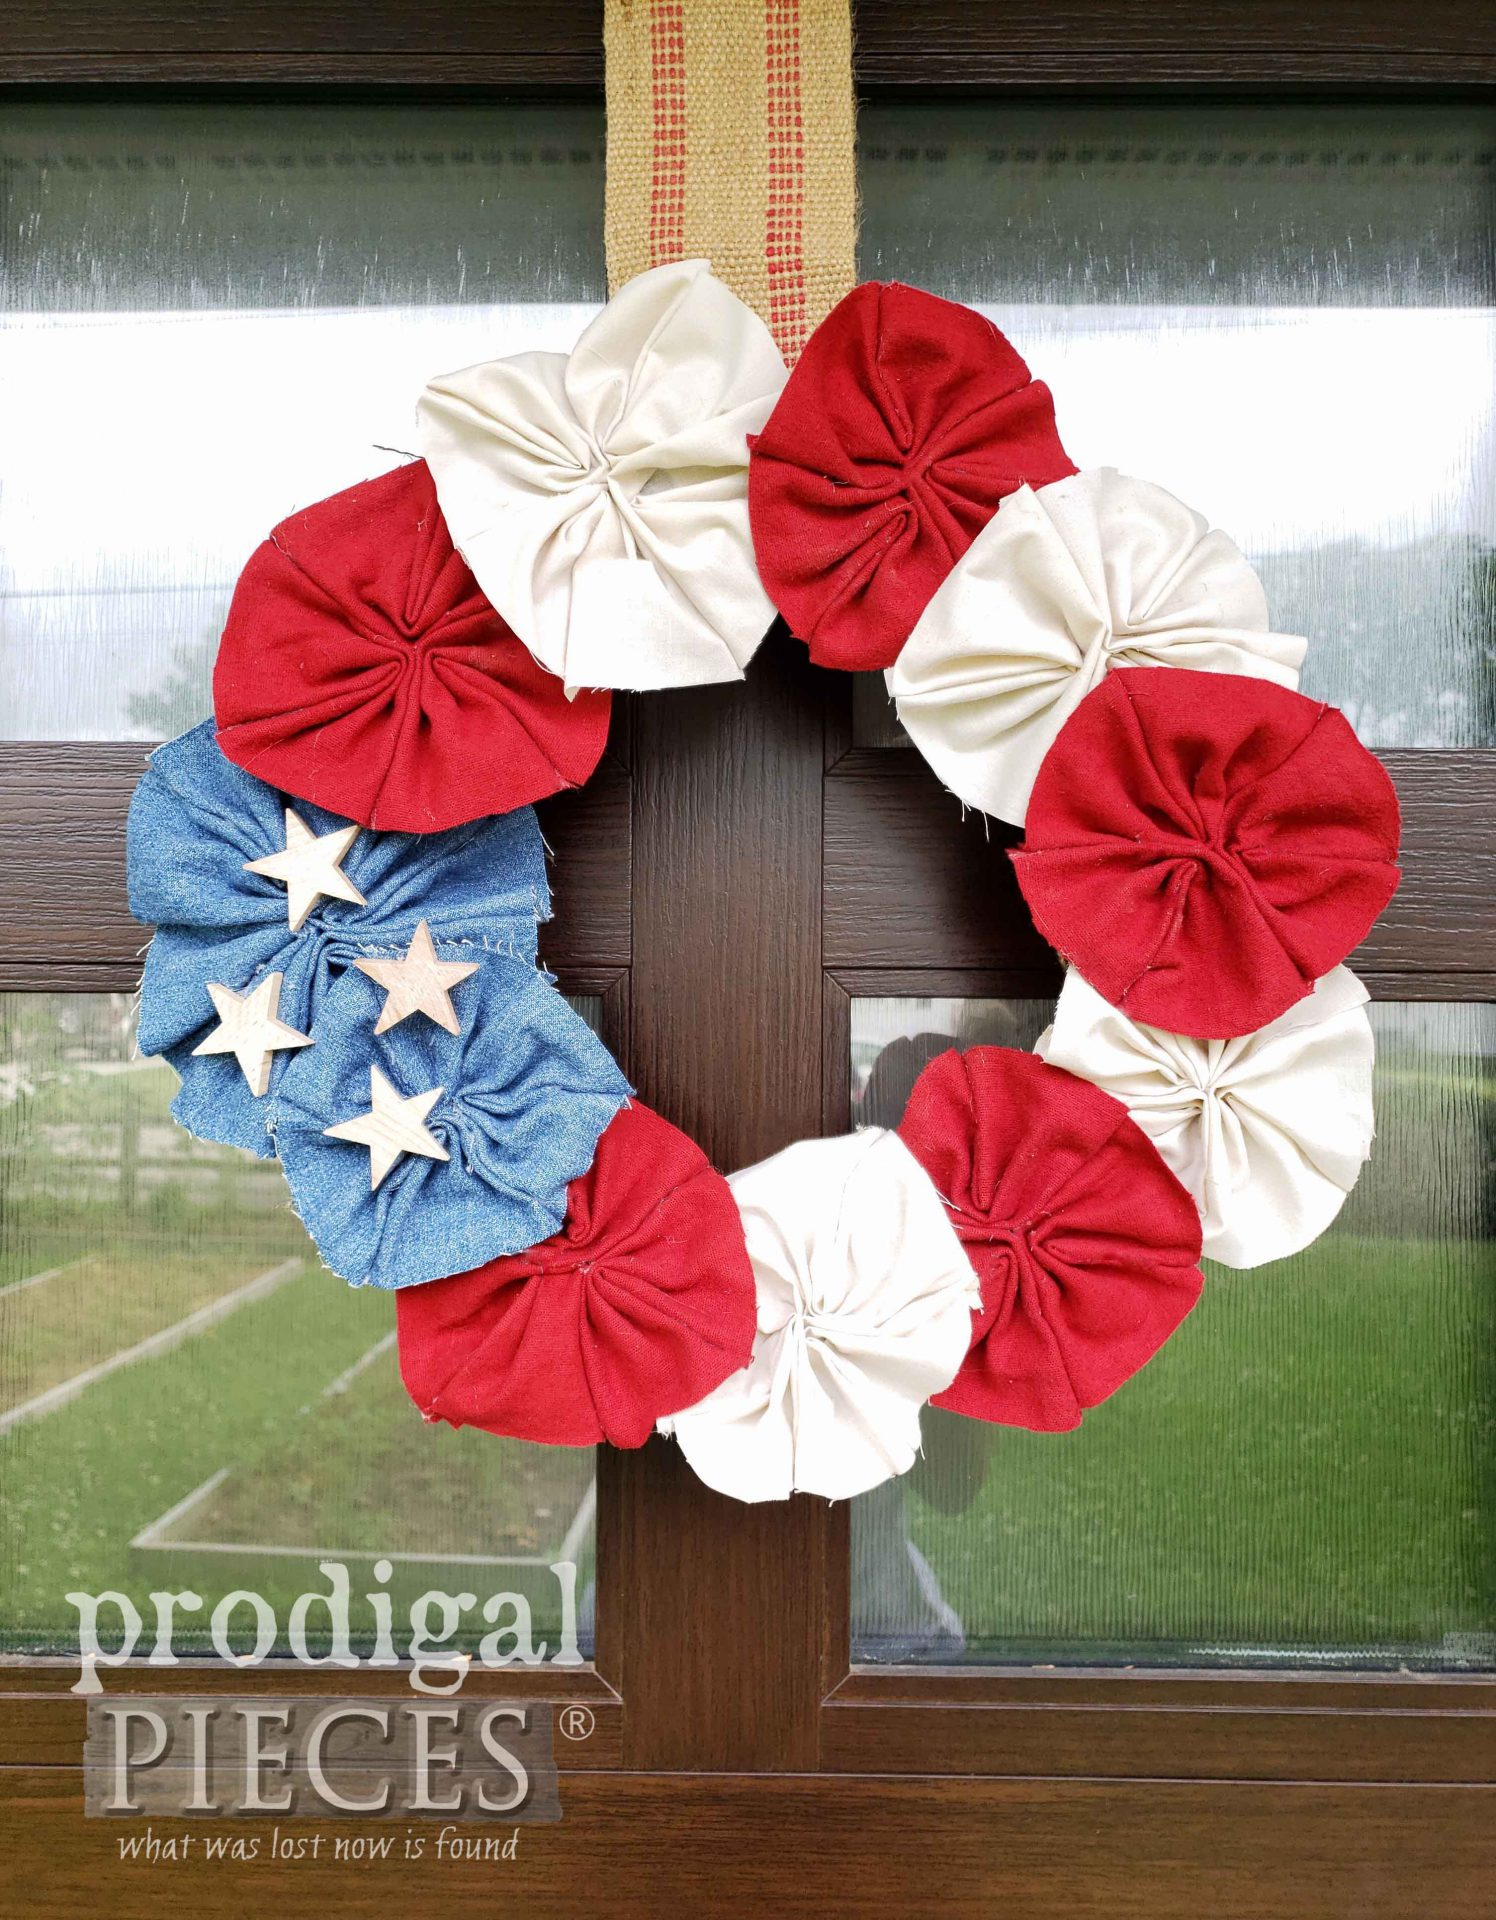 DIY Patriotic Wreath made of Refashioned Fabrics by Larissa of Prodigal Pieces | prodigalpieces.com #prodigalpieces #diy #4thofjuly #patriotic #usa #independenceday